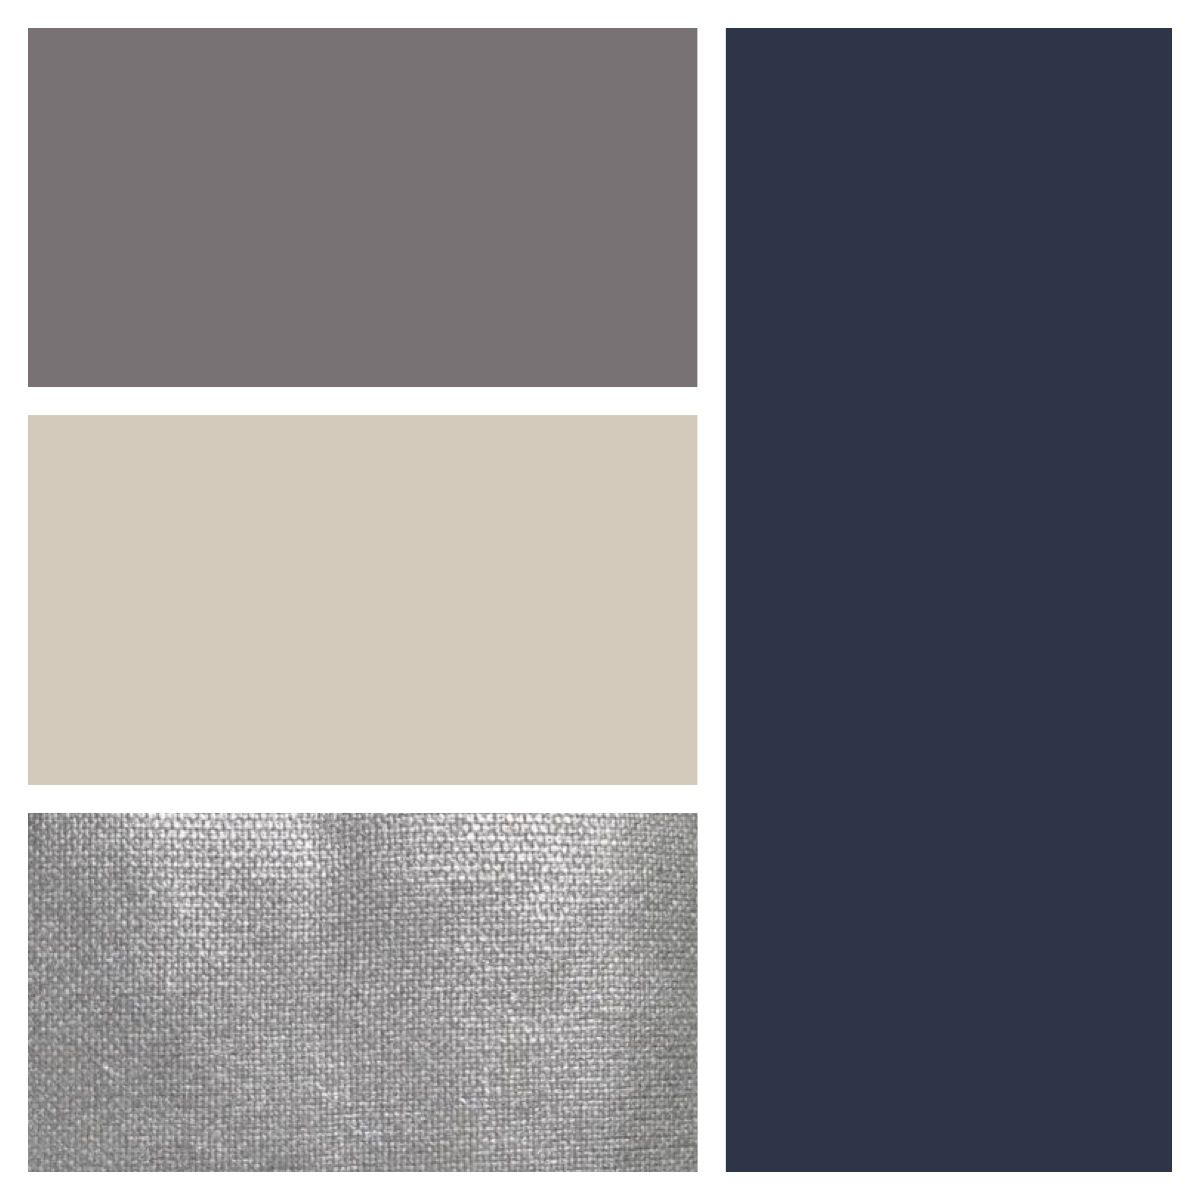 Colour Pallet? I Like The Greys Complimenting The Dark